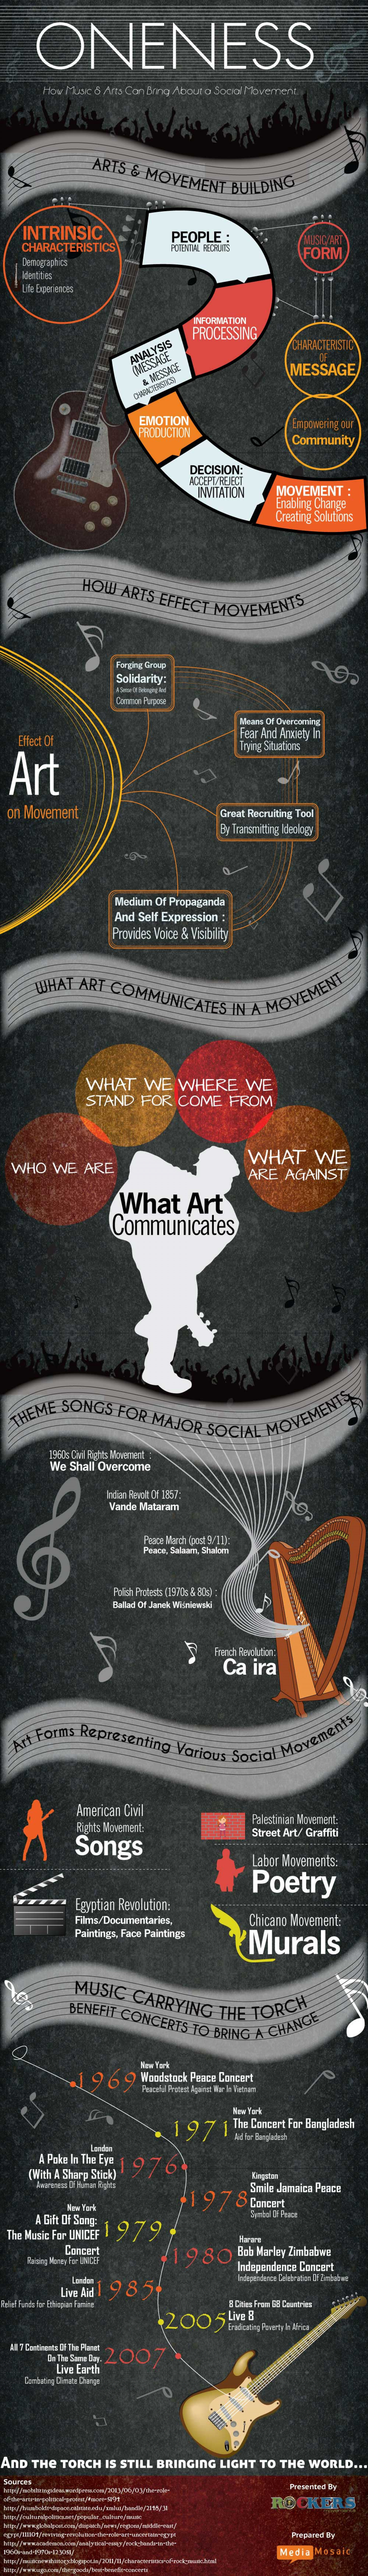 Rockers Movement Oneness Infographic